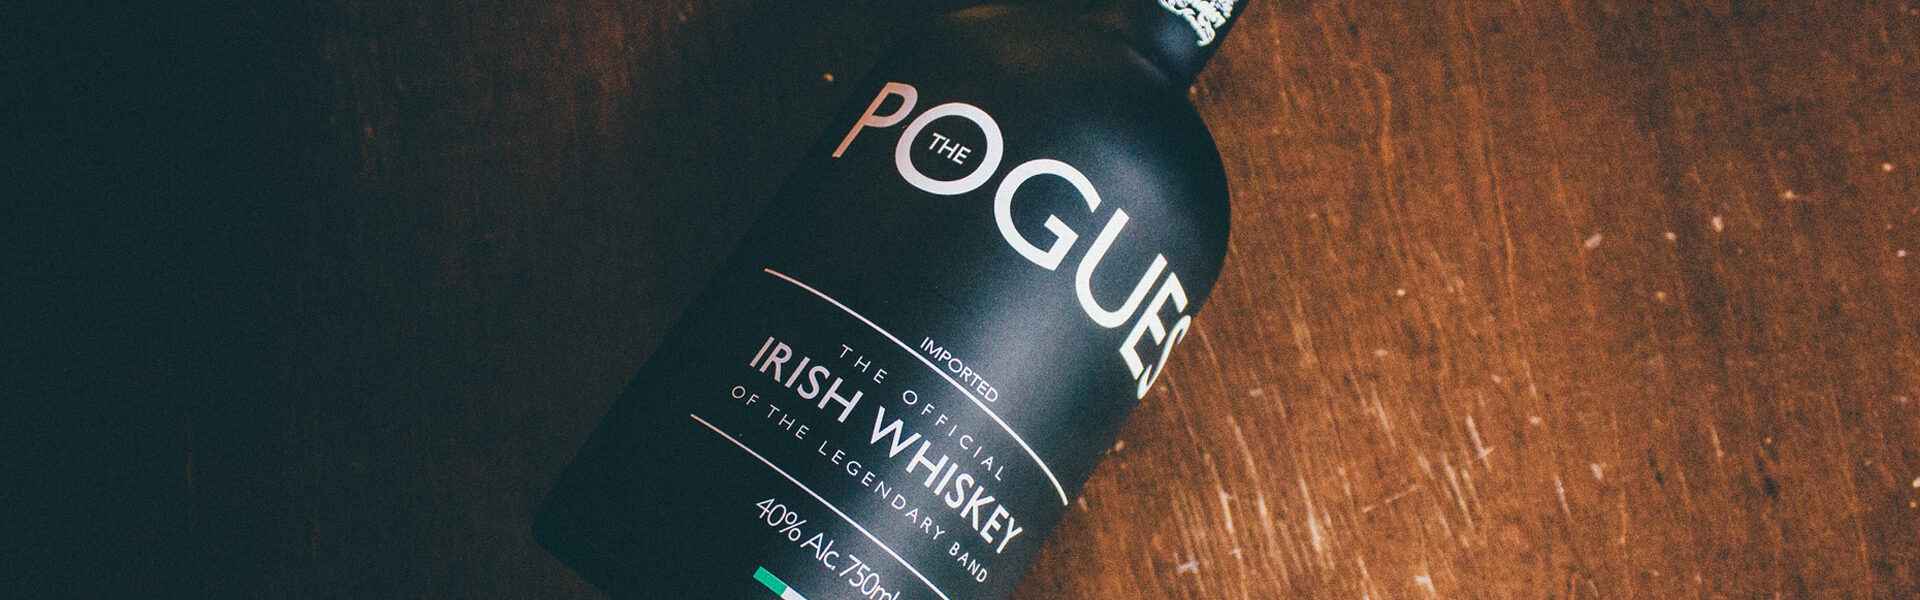 The Pogues xwhiskey - http://www.insidehook.com - cc